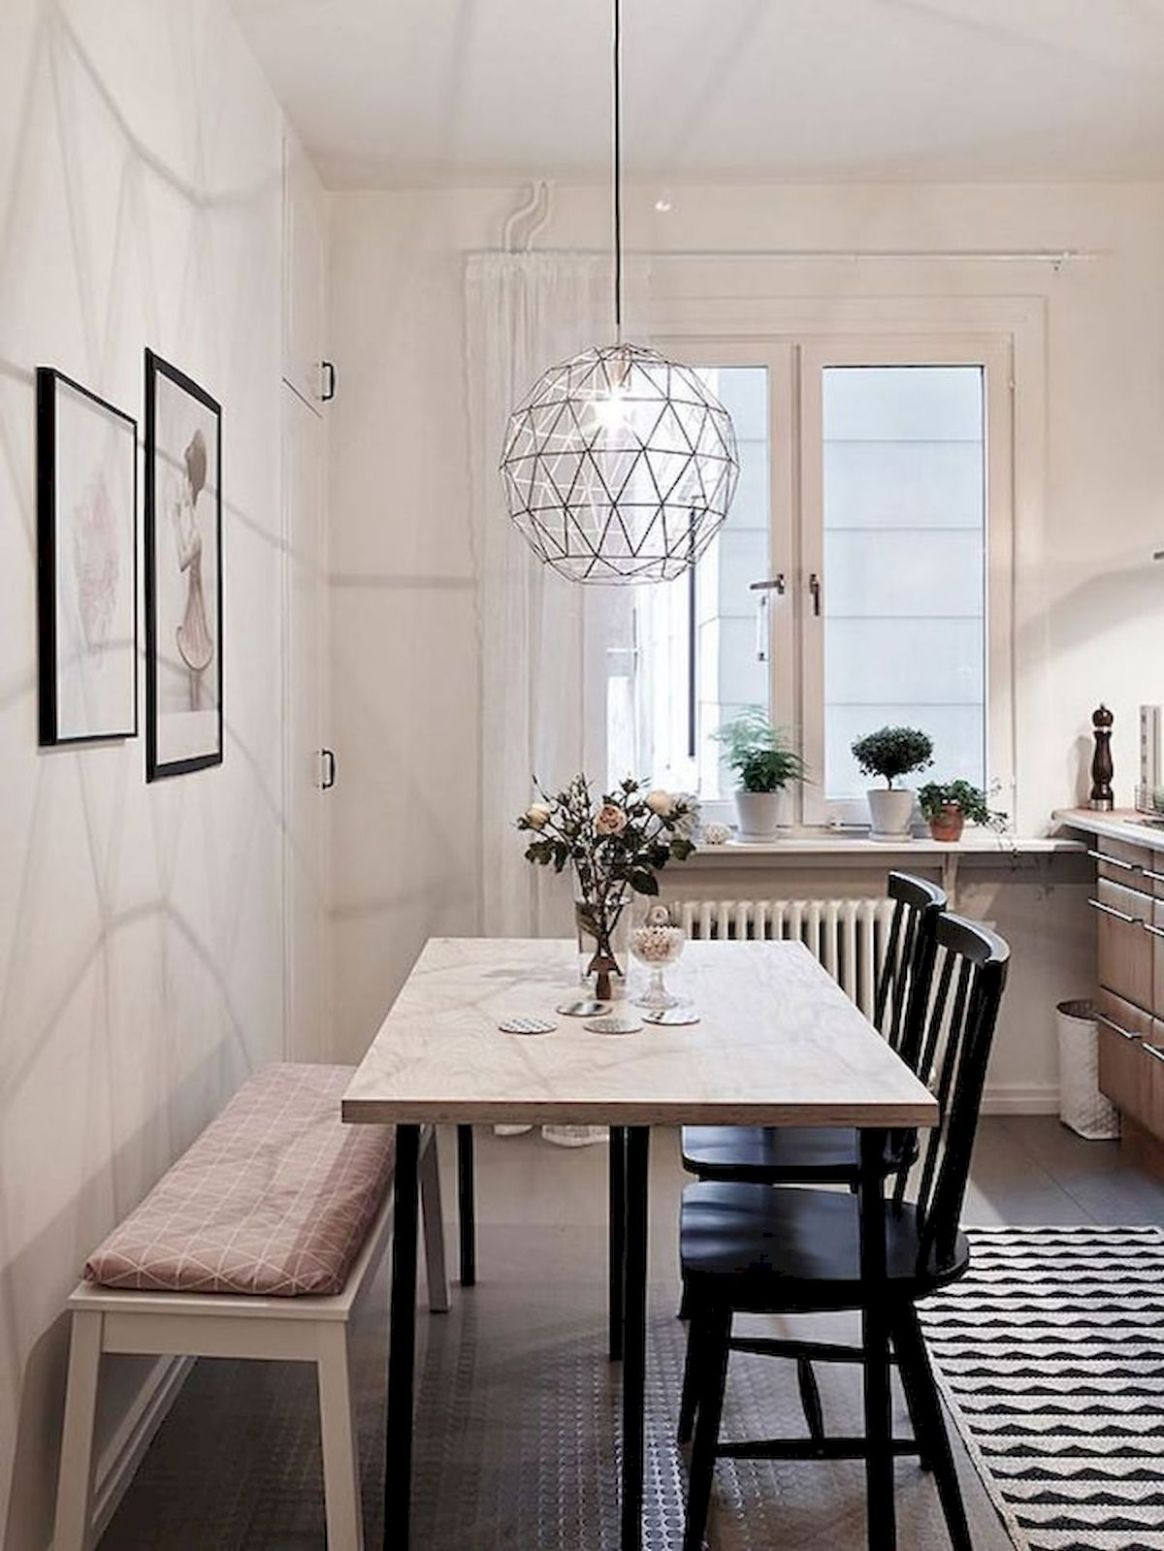 12 Beautiful Small Dining Room Ideas On A Budget   Small dining ...